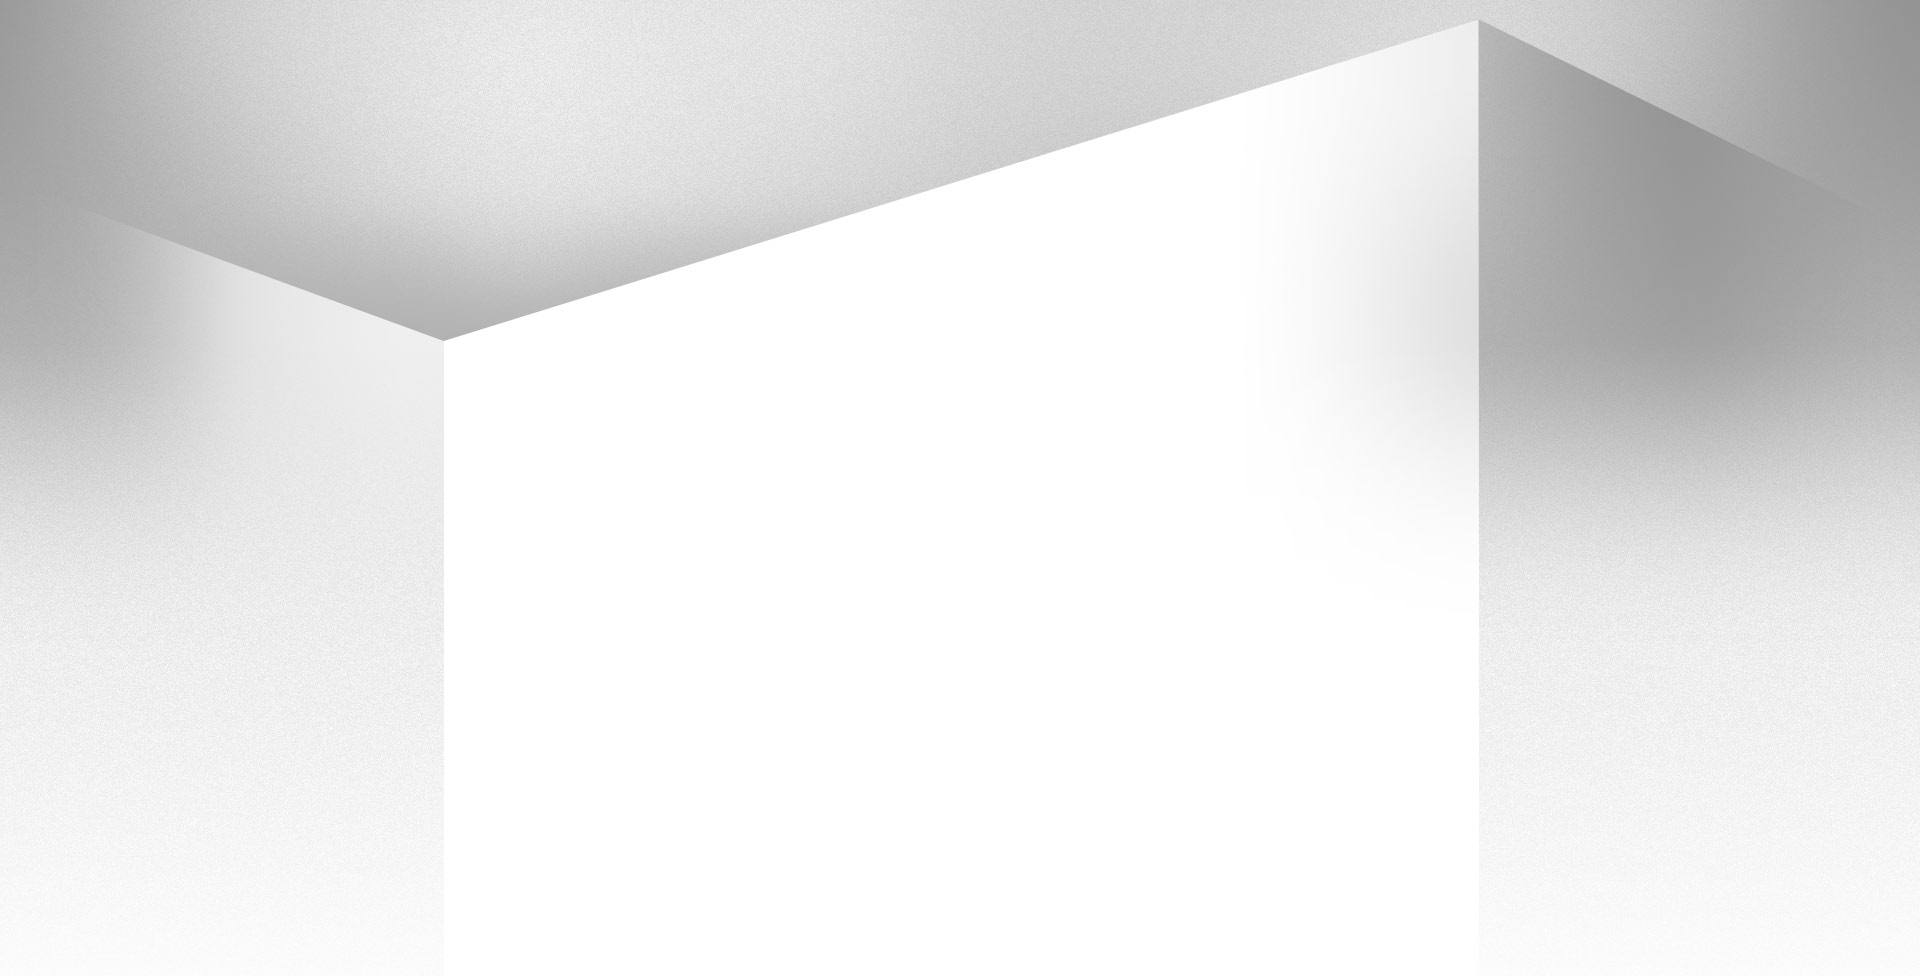 Background